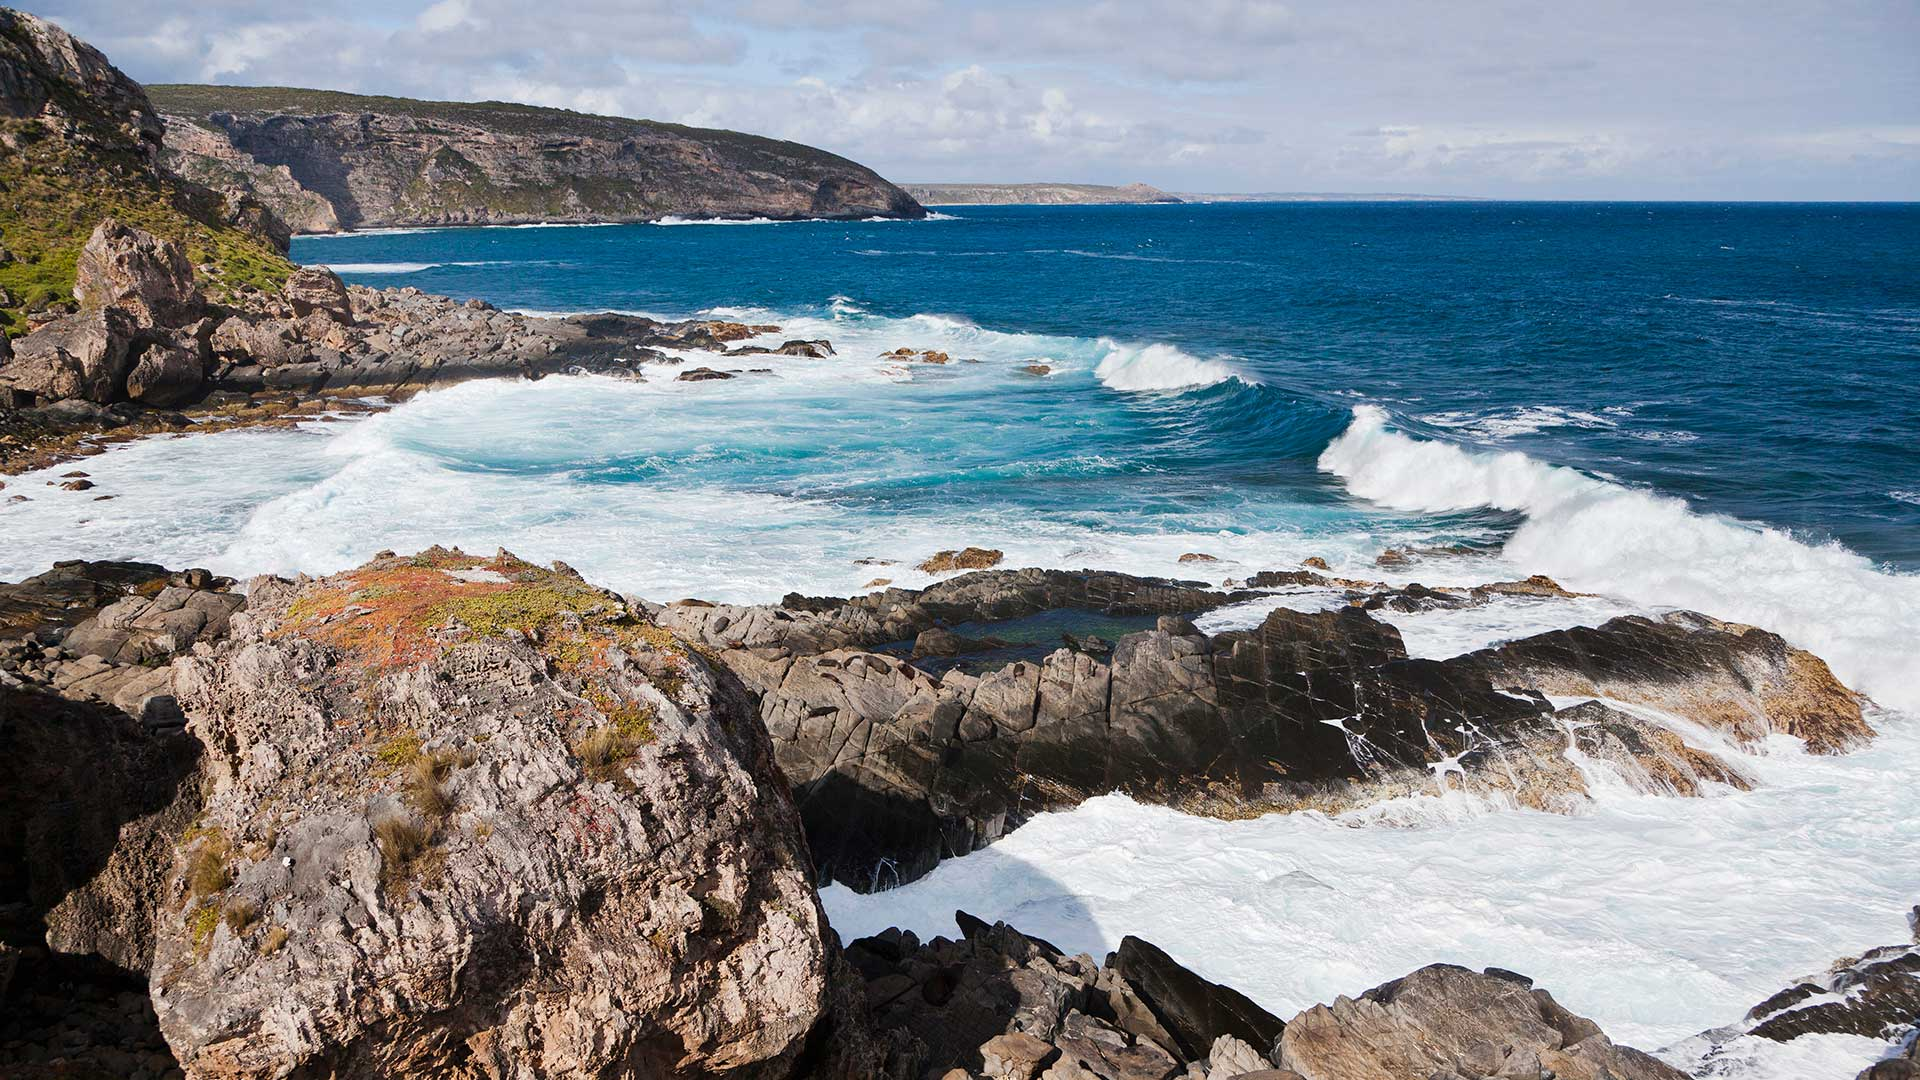 The cliff line of Cape du Couedic, in the Flinders Chase National Park on Kangaroo Island, Australia